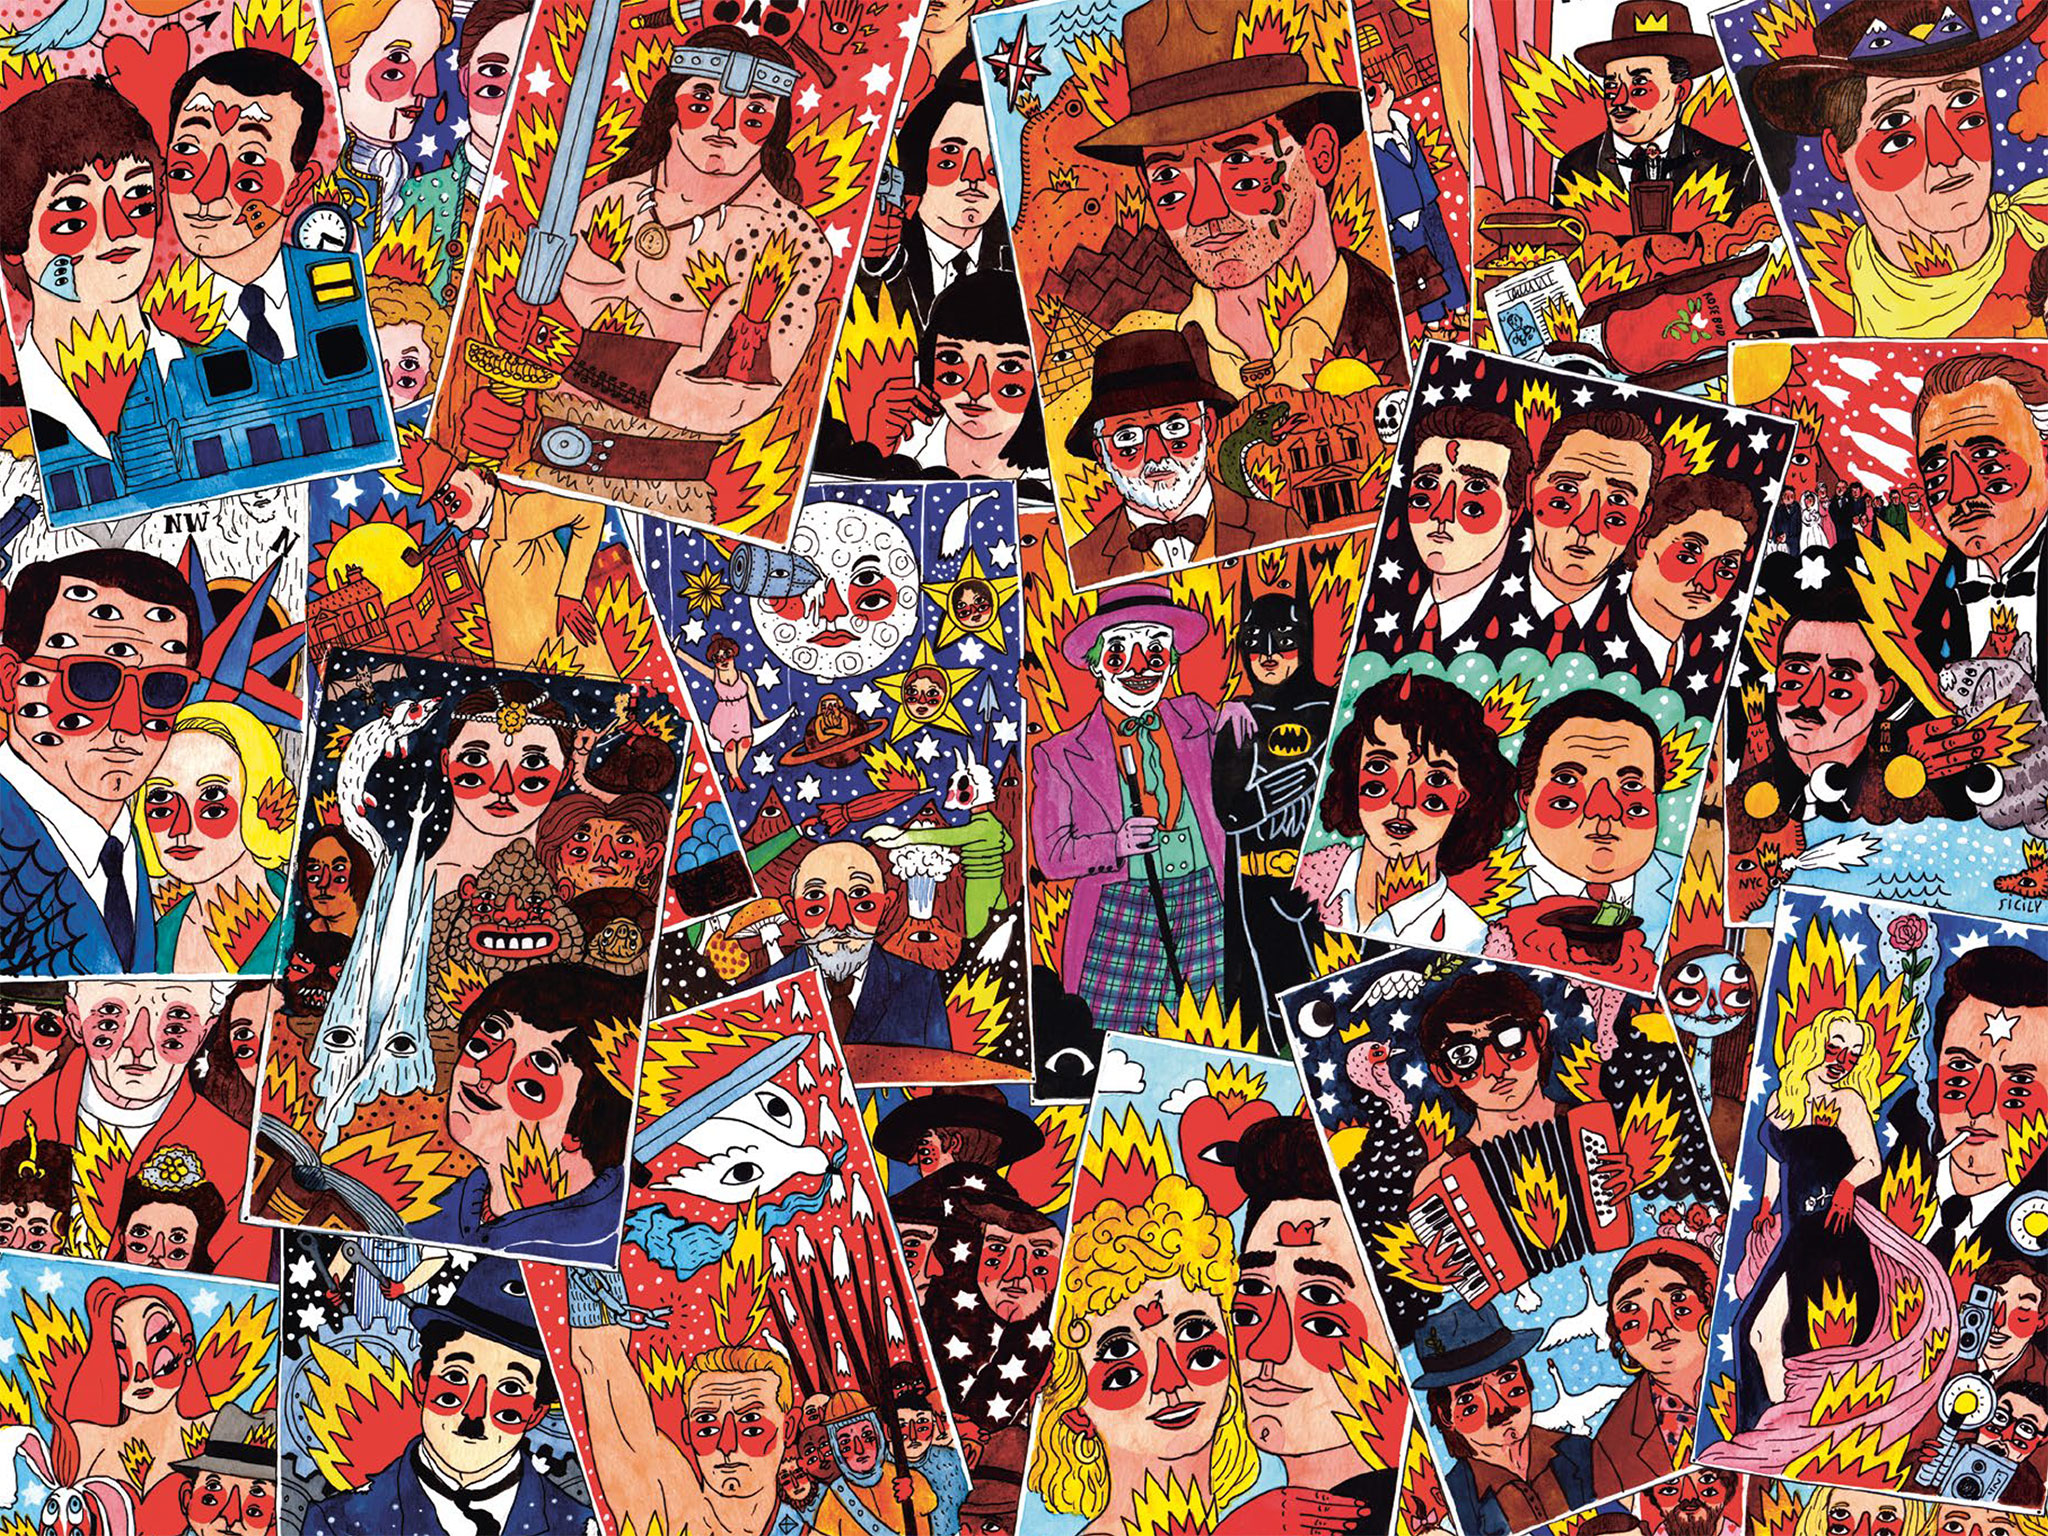 101Movies_Endpapers_2048